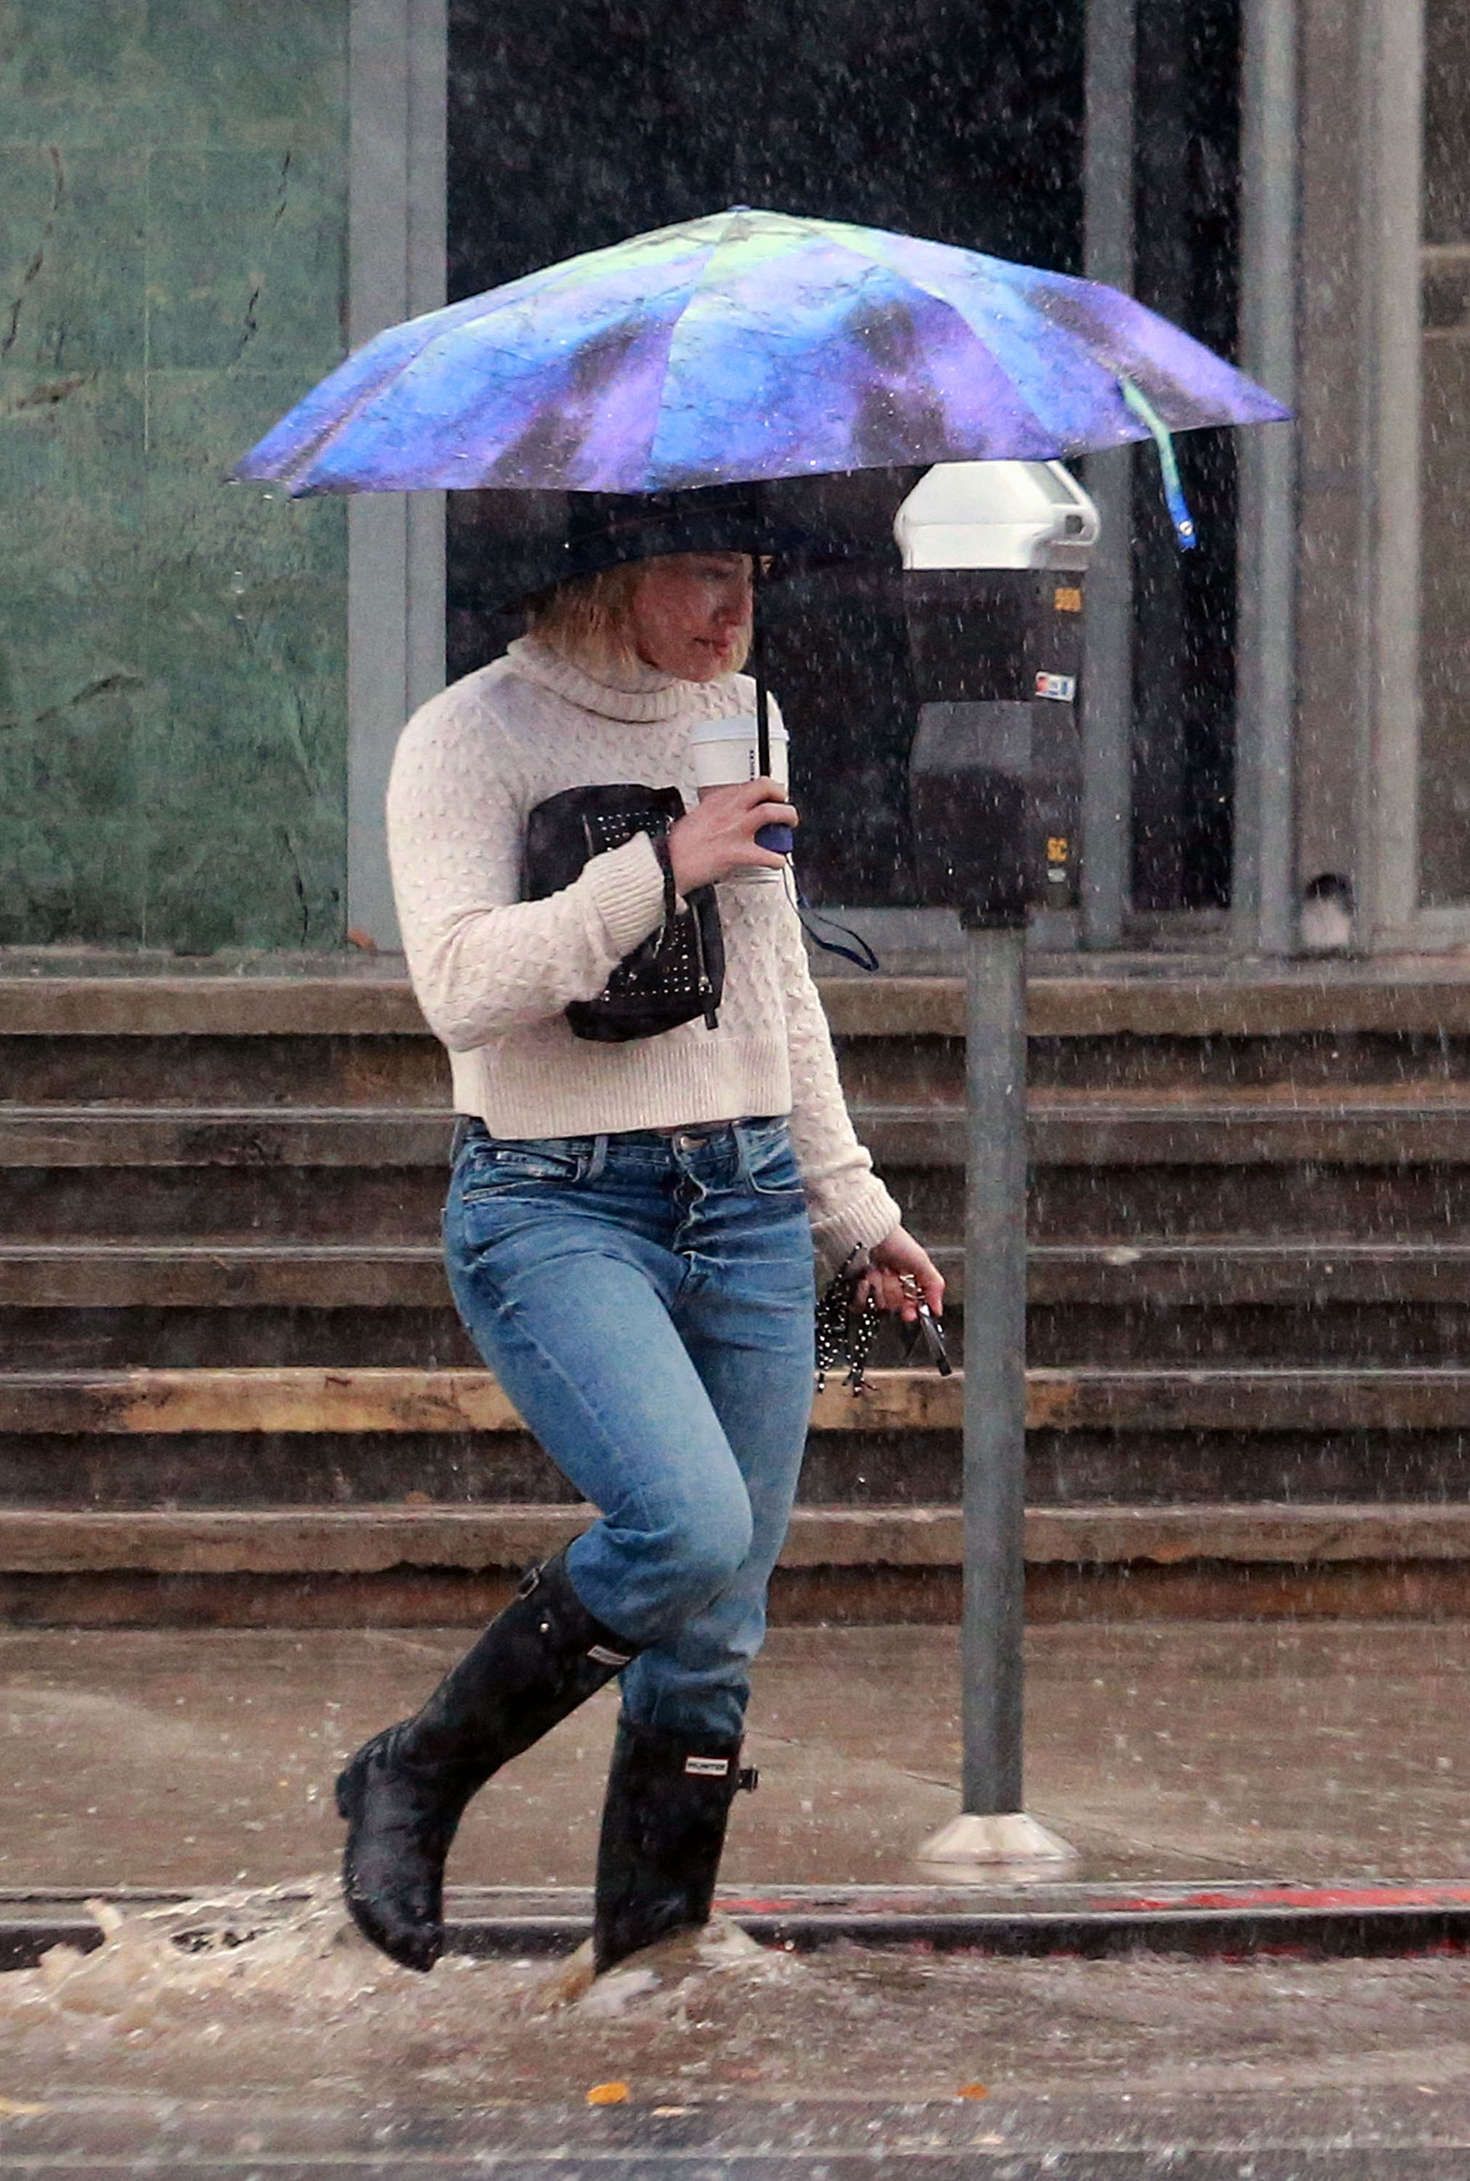 Hilary Duff 2016 : Hilary Duff in Jeans out on a rainy day -09